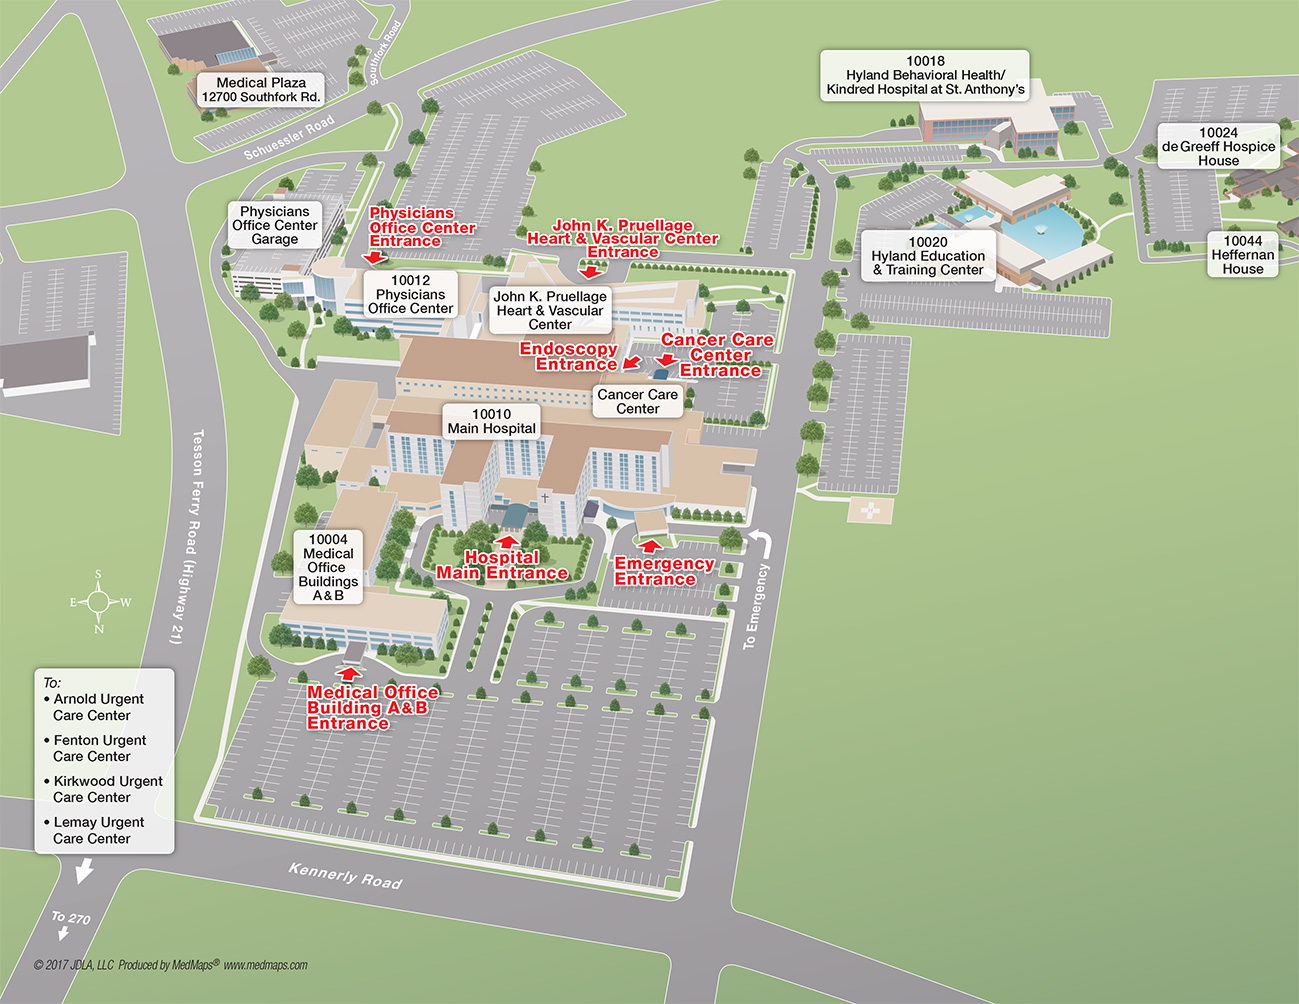 Mercy Hospital Campus Map.Mercy Hospital Map Map Of Barbados